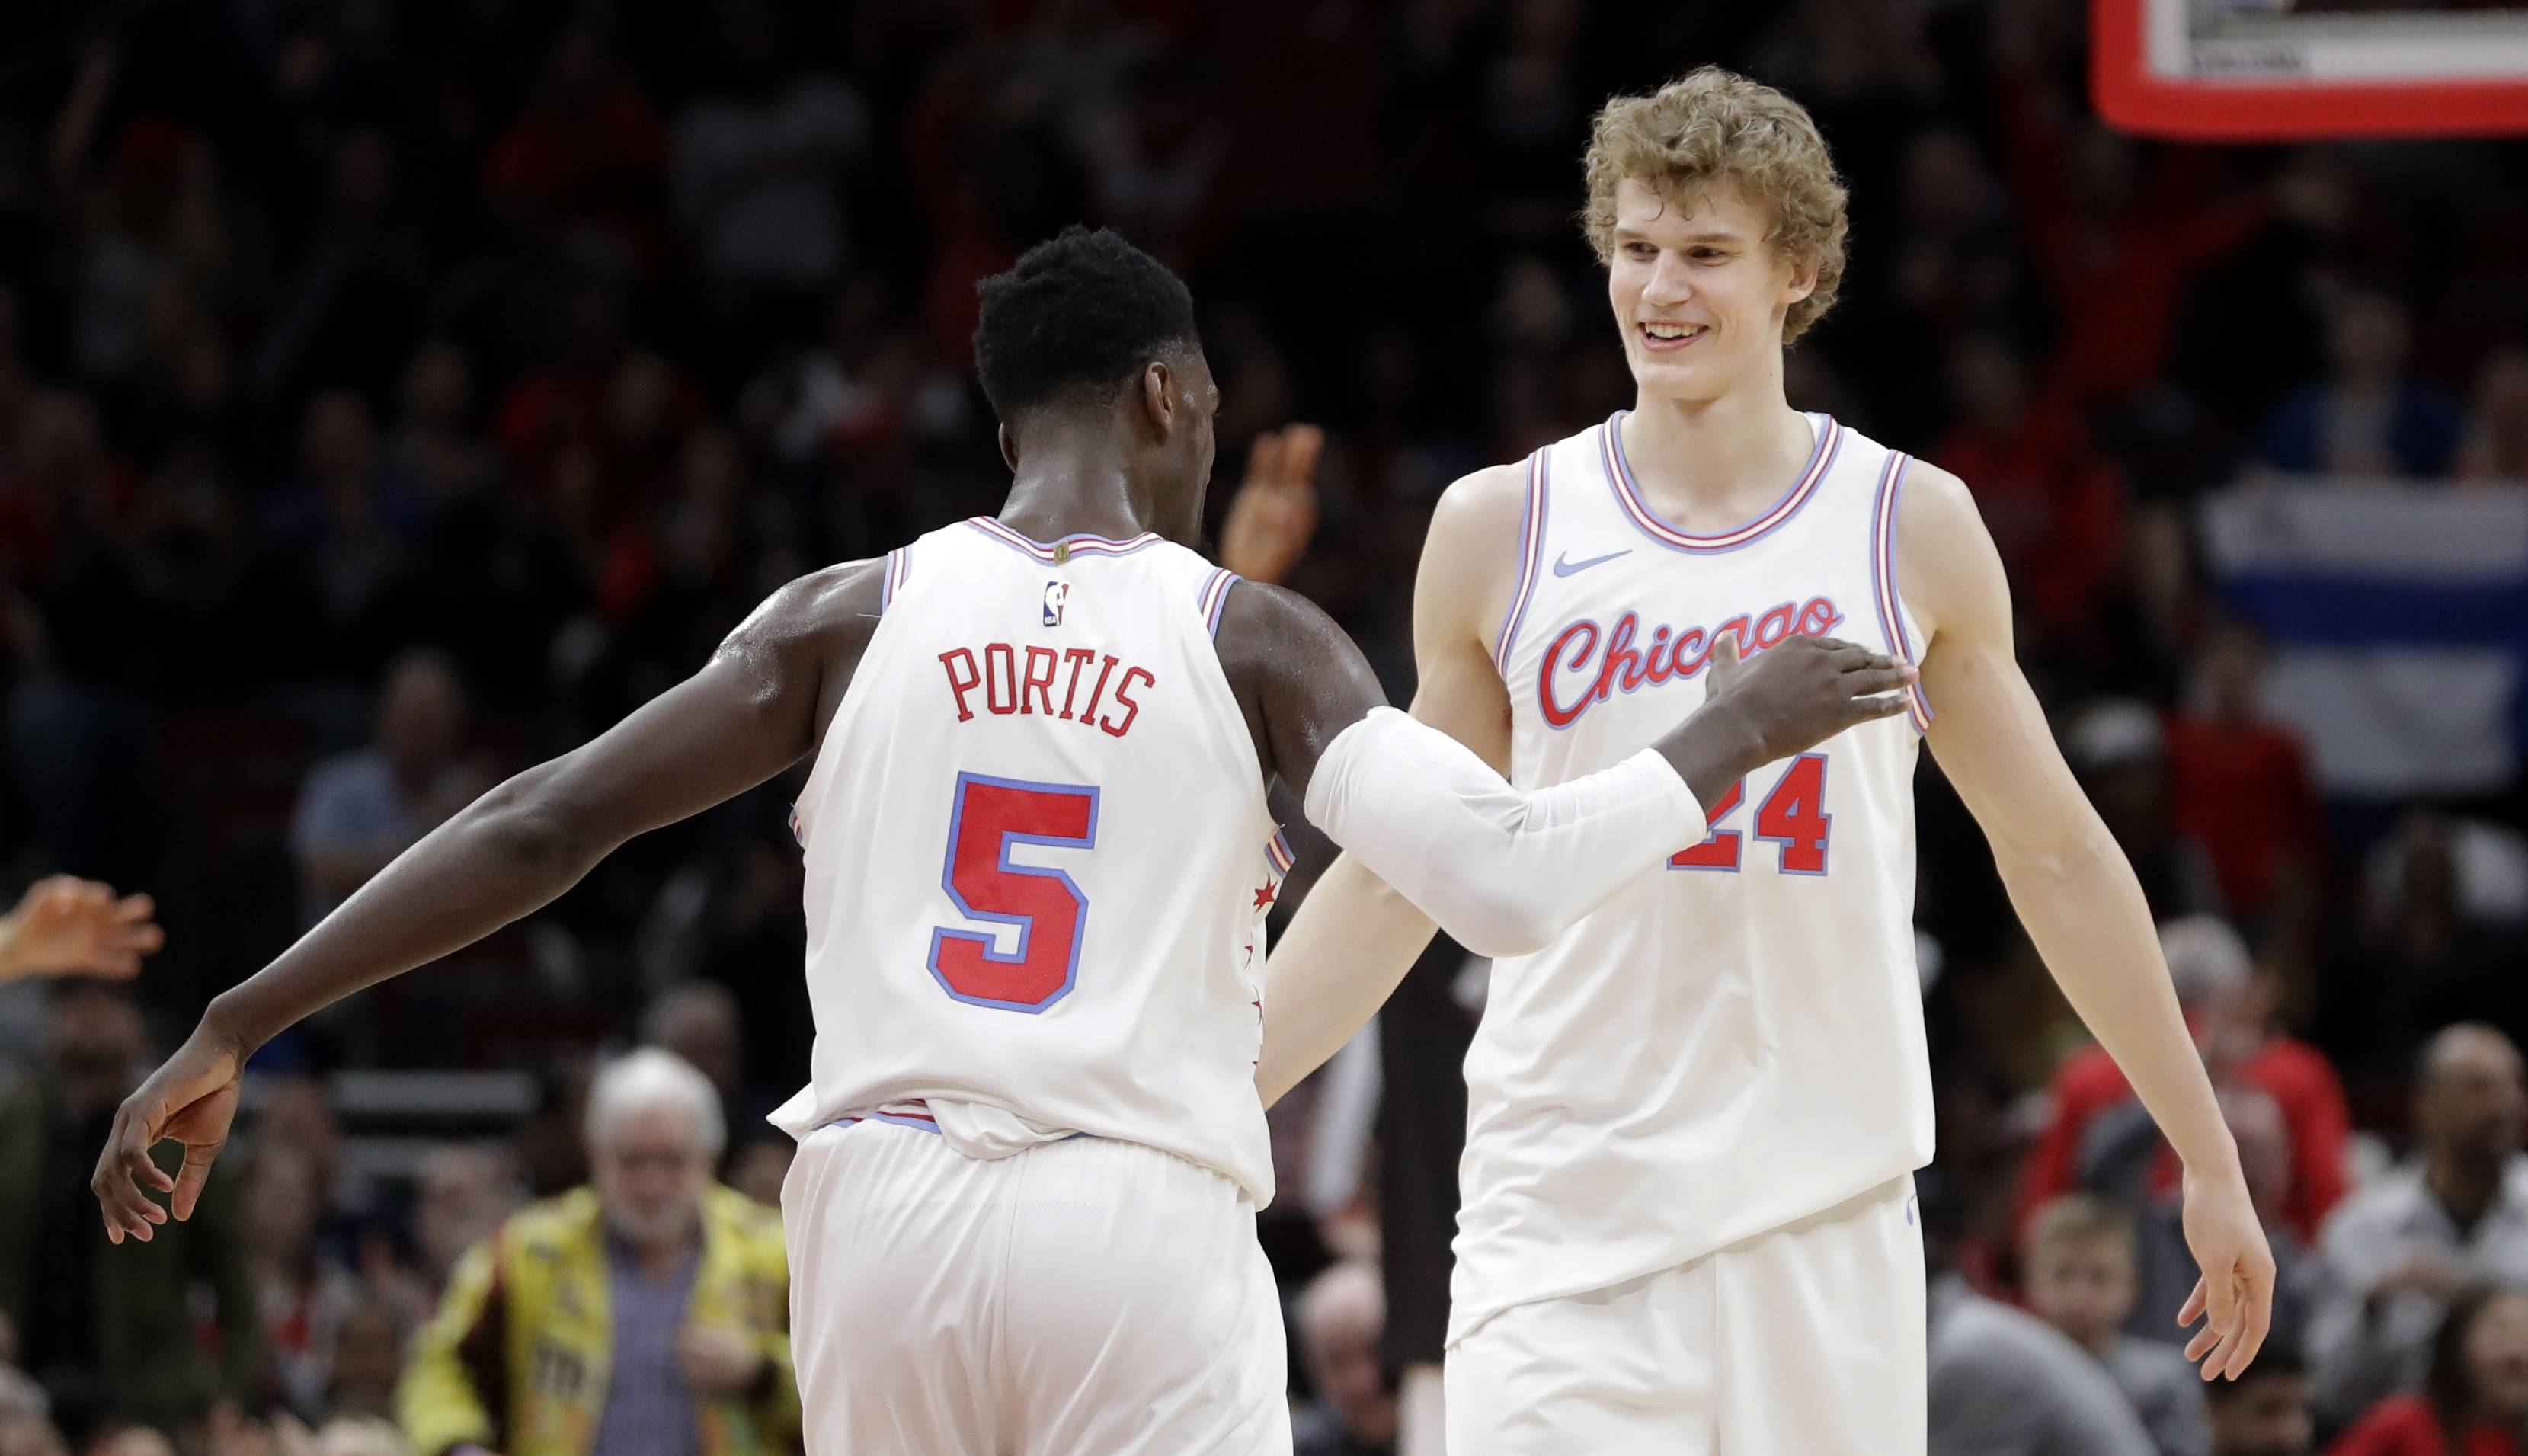 Chicago Bulls' Bobby Portis (5) and Lauri Markkanen celebrates Markkanen's clutch score late in the second half of an NBA basketball game against the Dallas Mavericks, Friday, March 2, 2018, in Chicago.